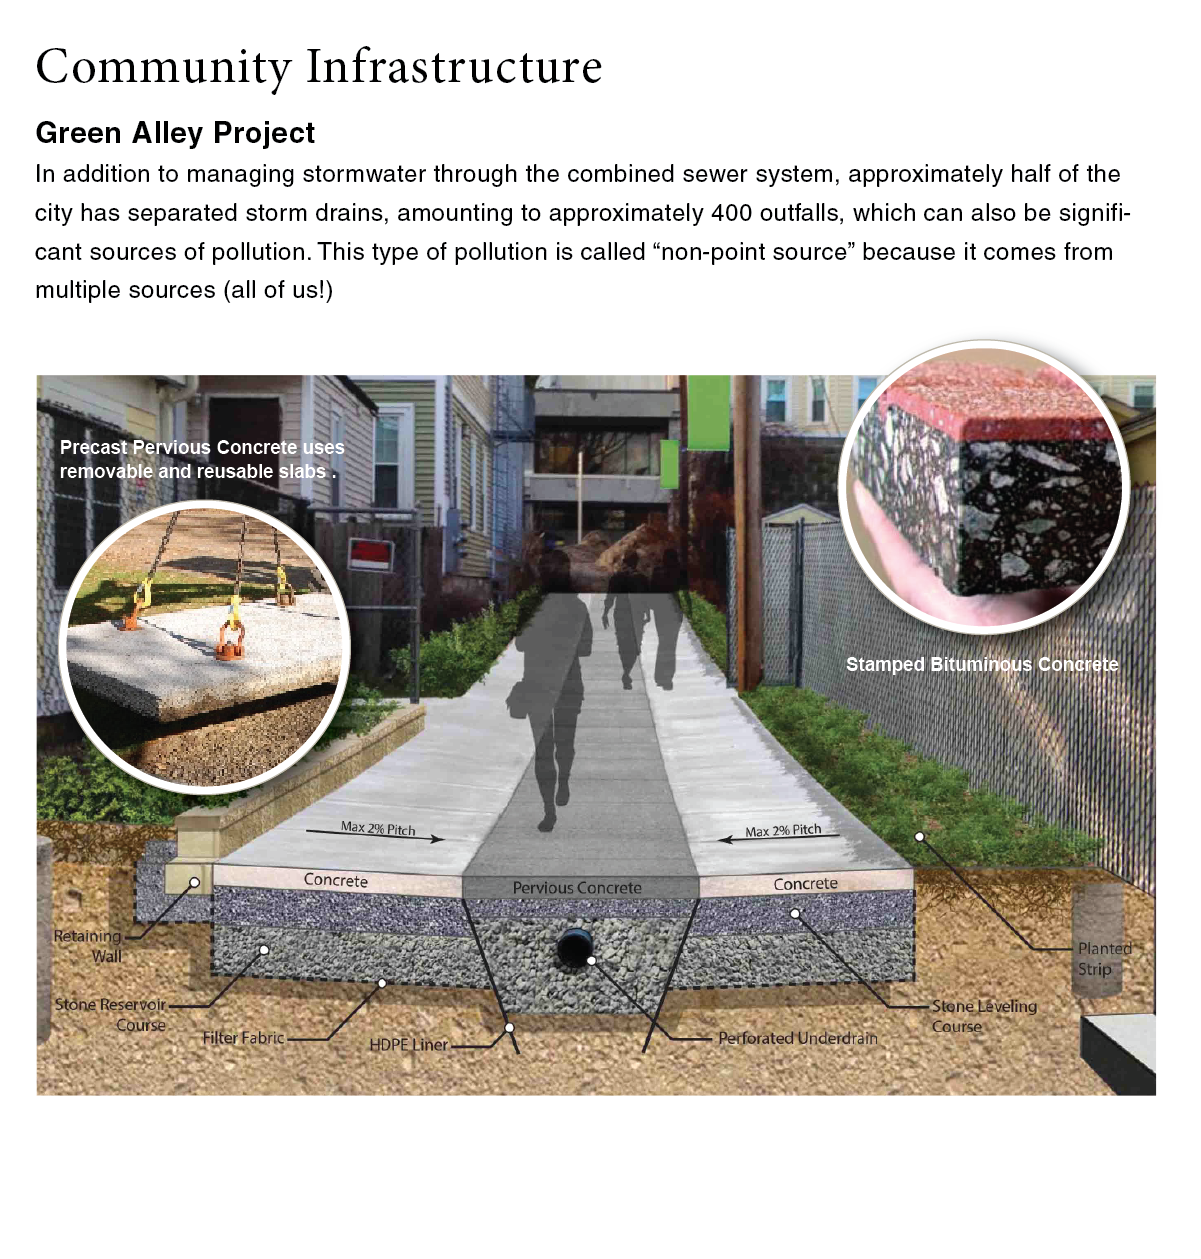 community infrastructure-green alley